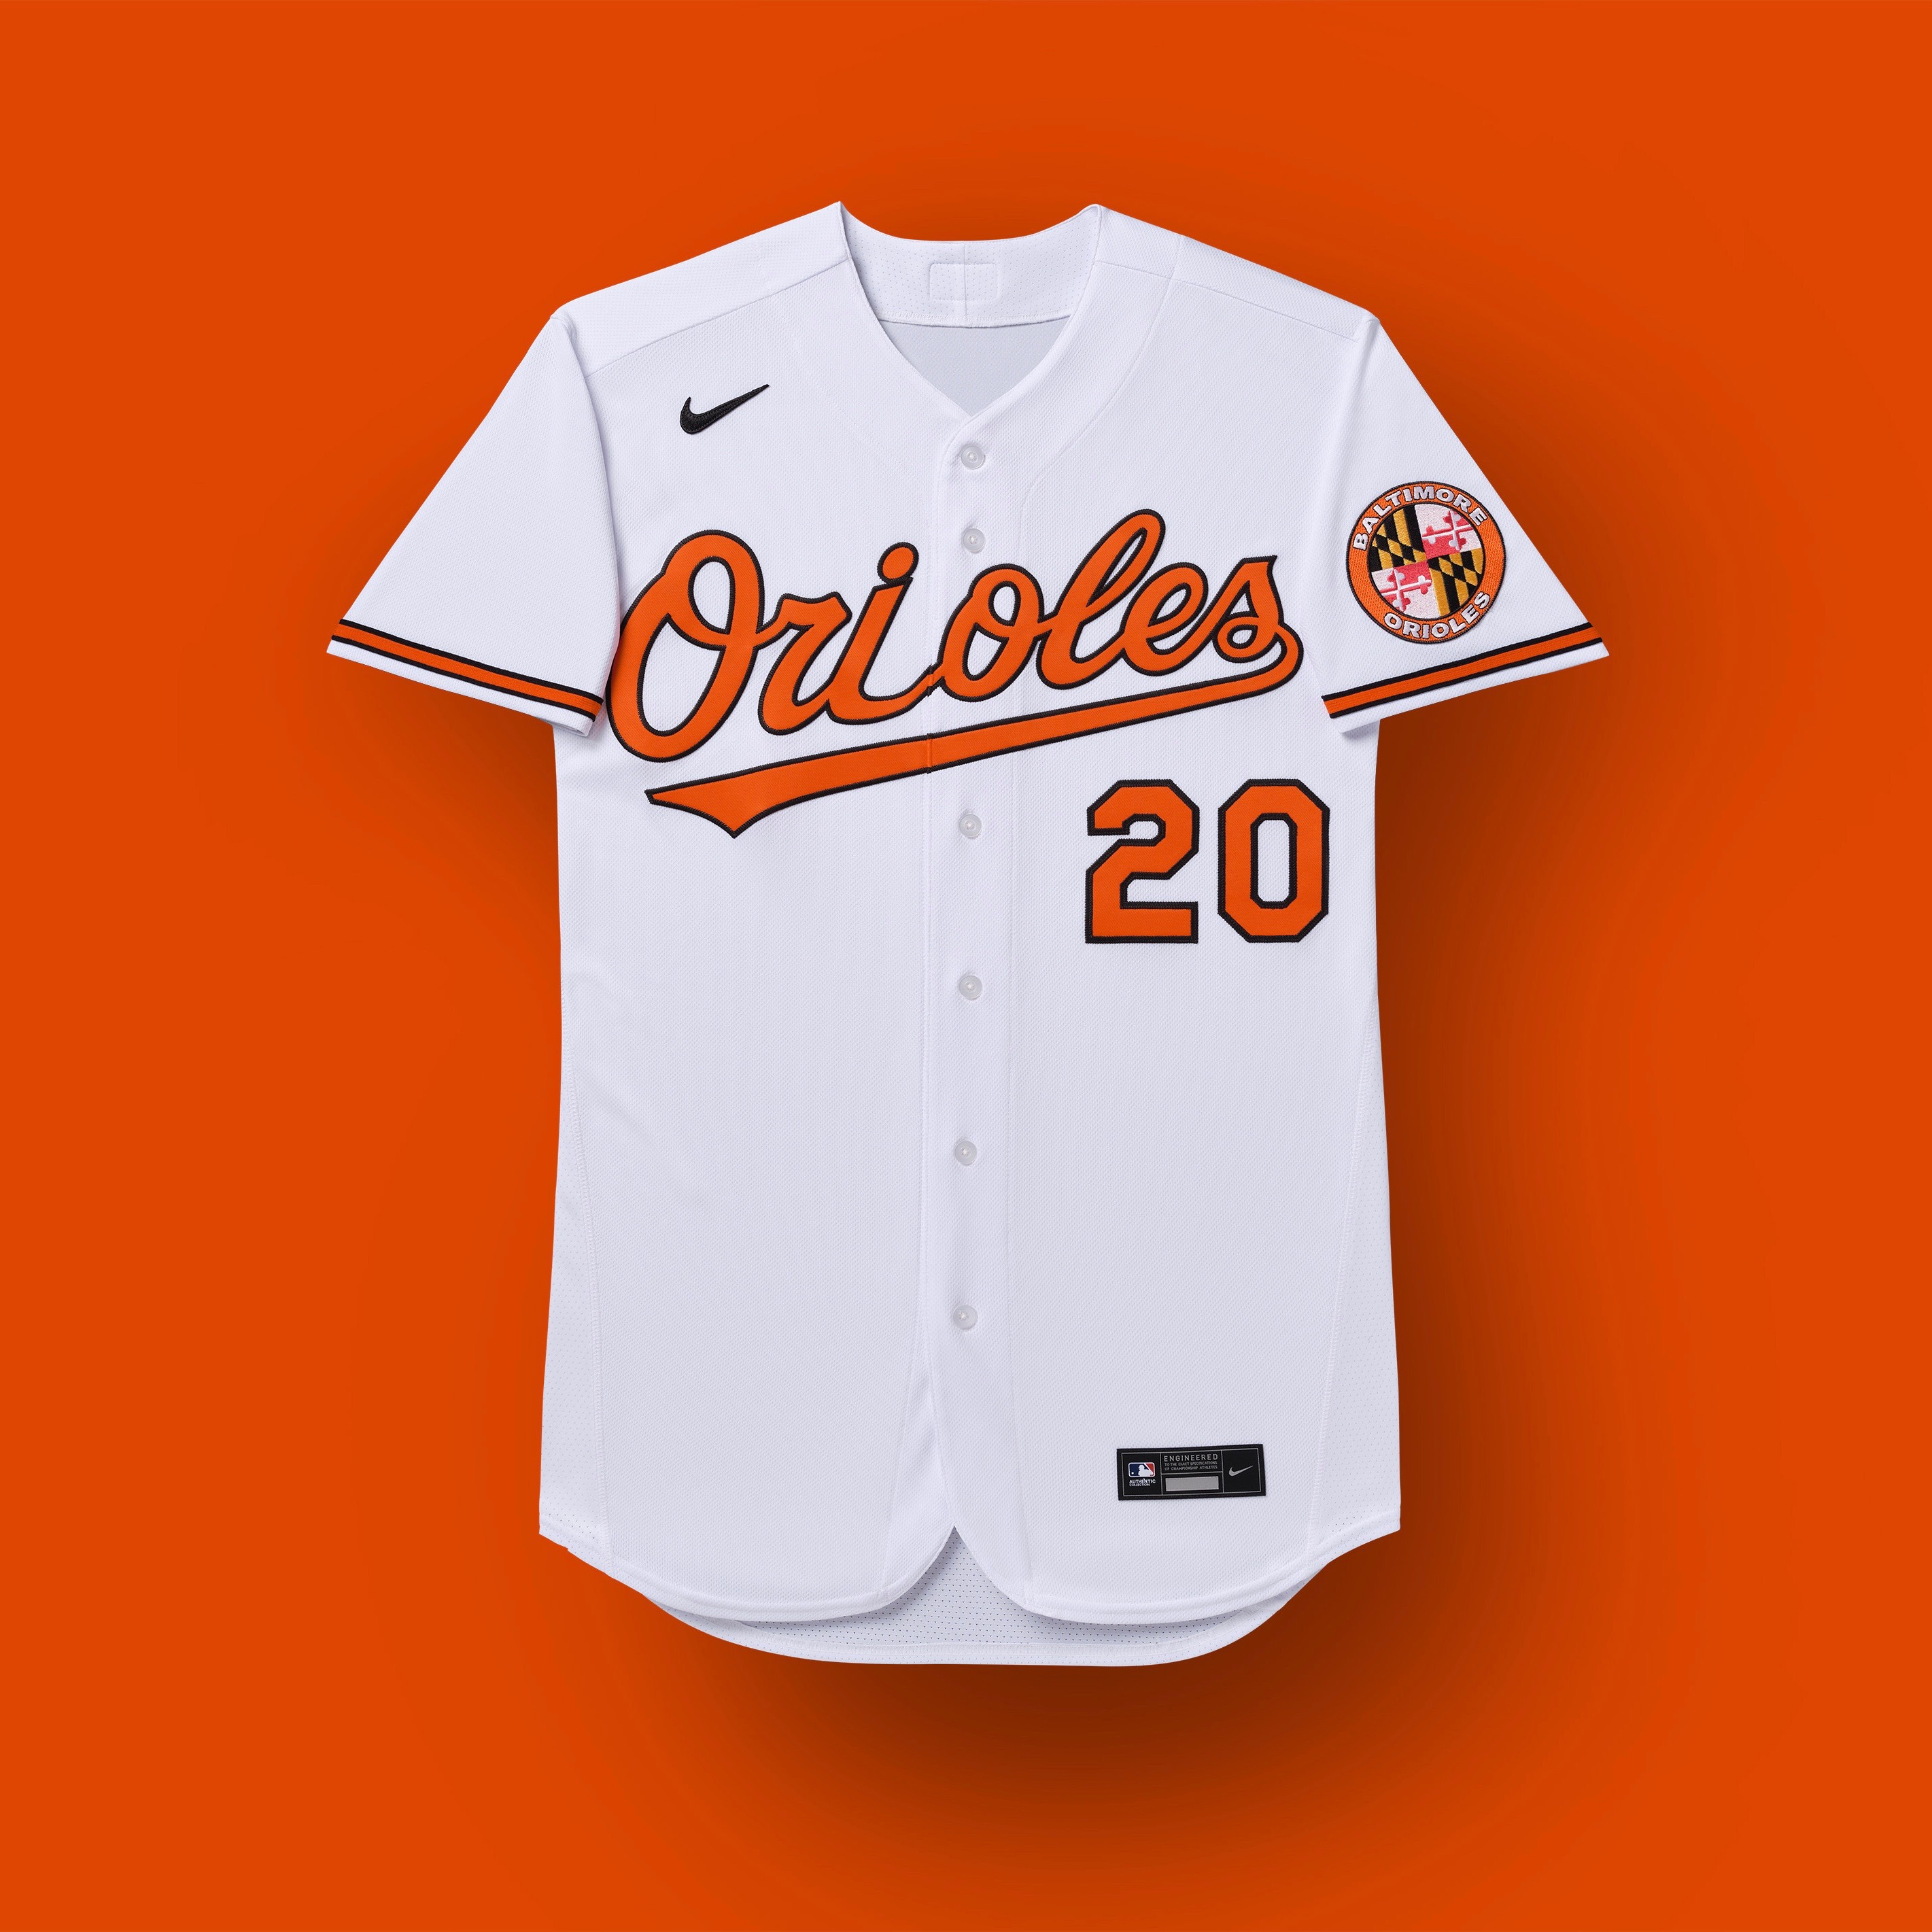 baltimore orioles 2020 uniforms